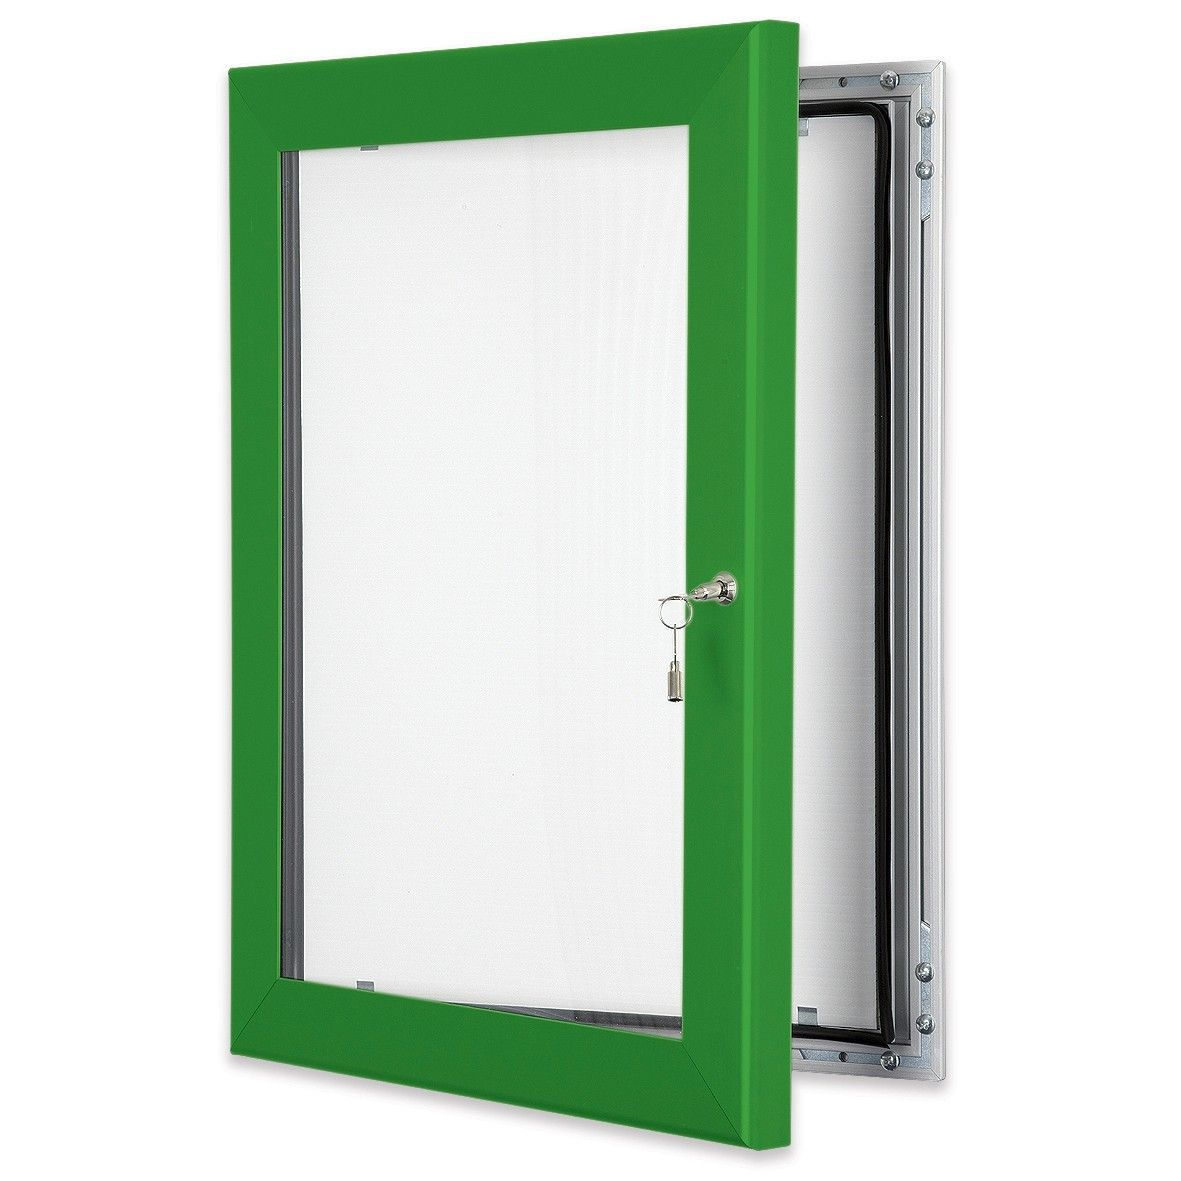 colour outdoor lockable poster cases poster frames which are